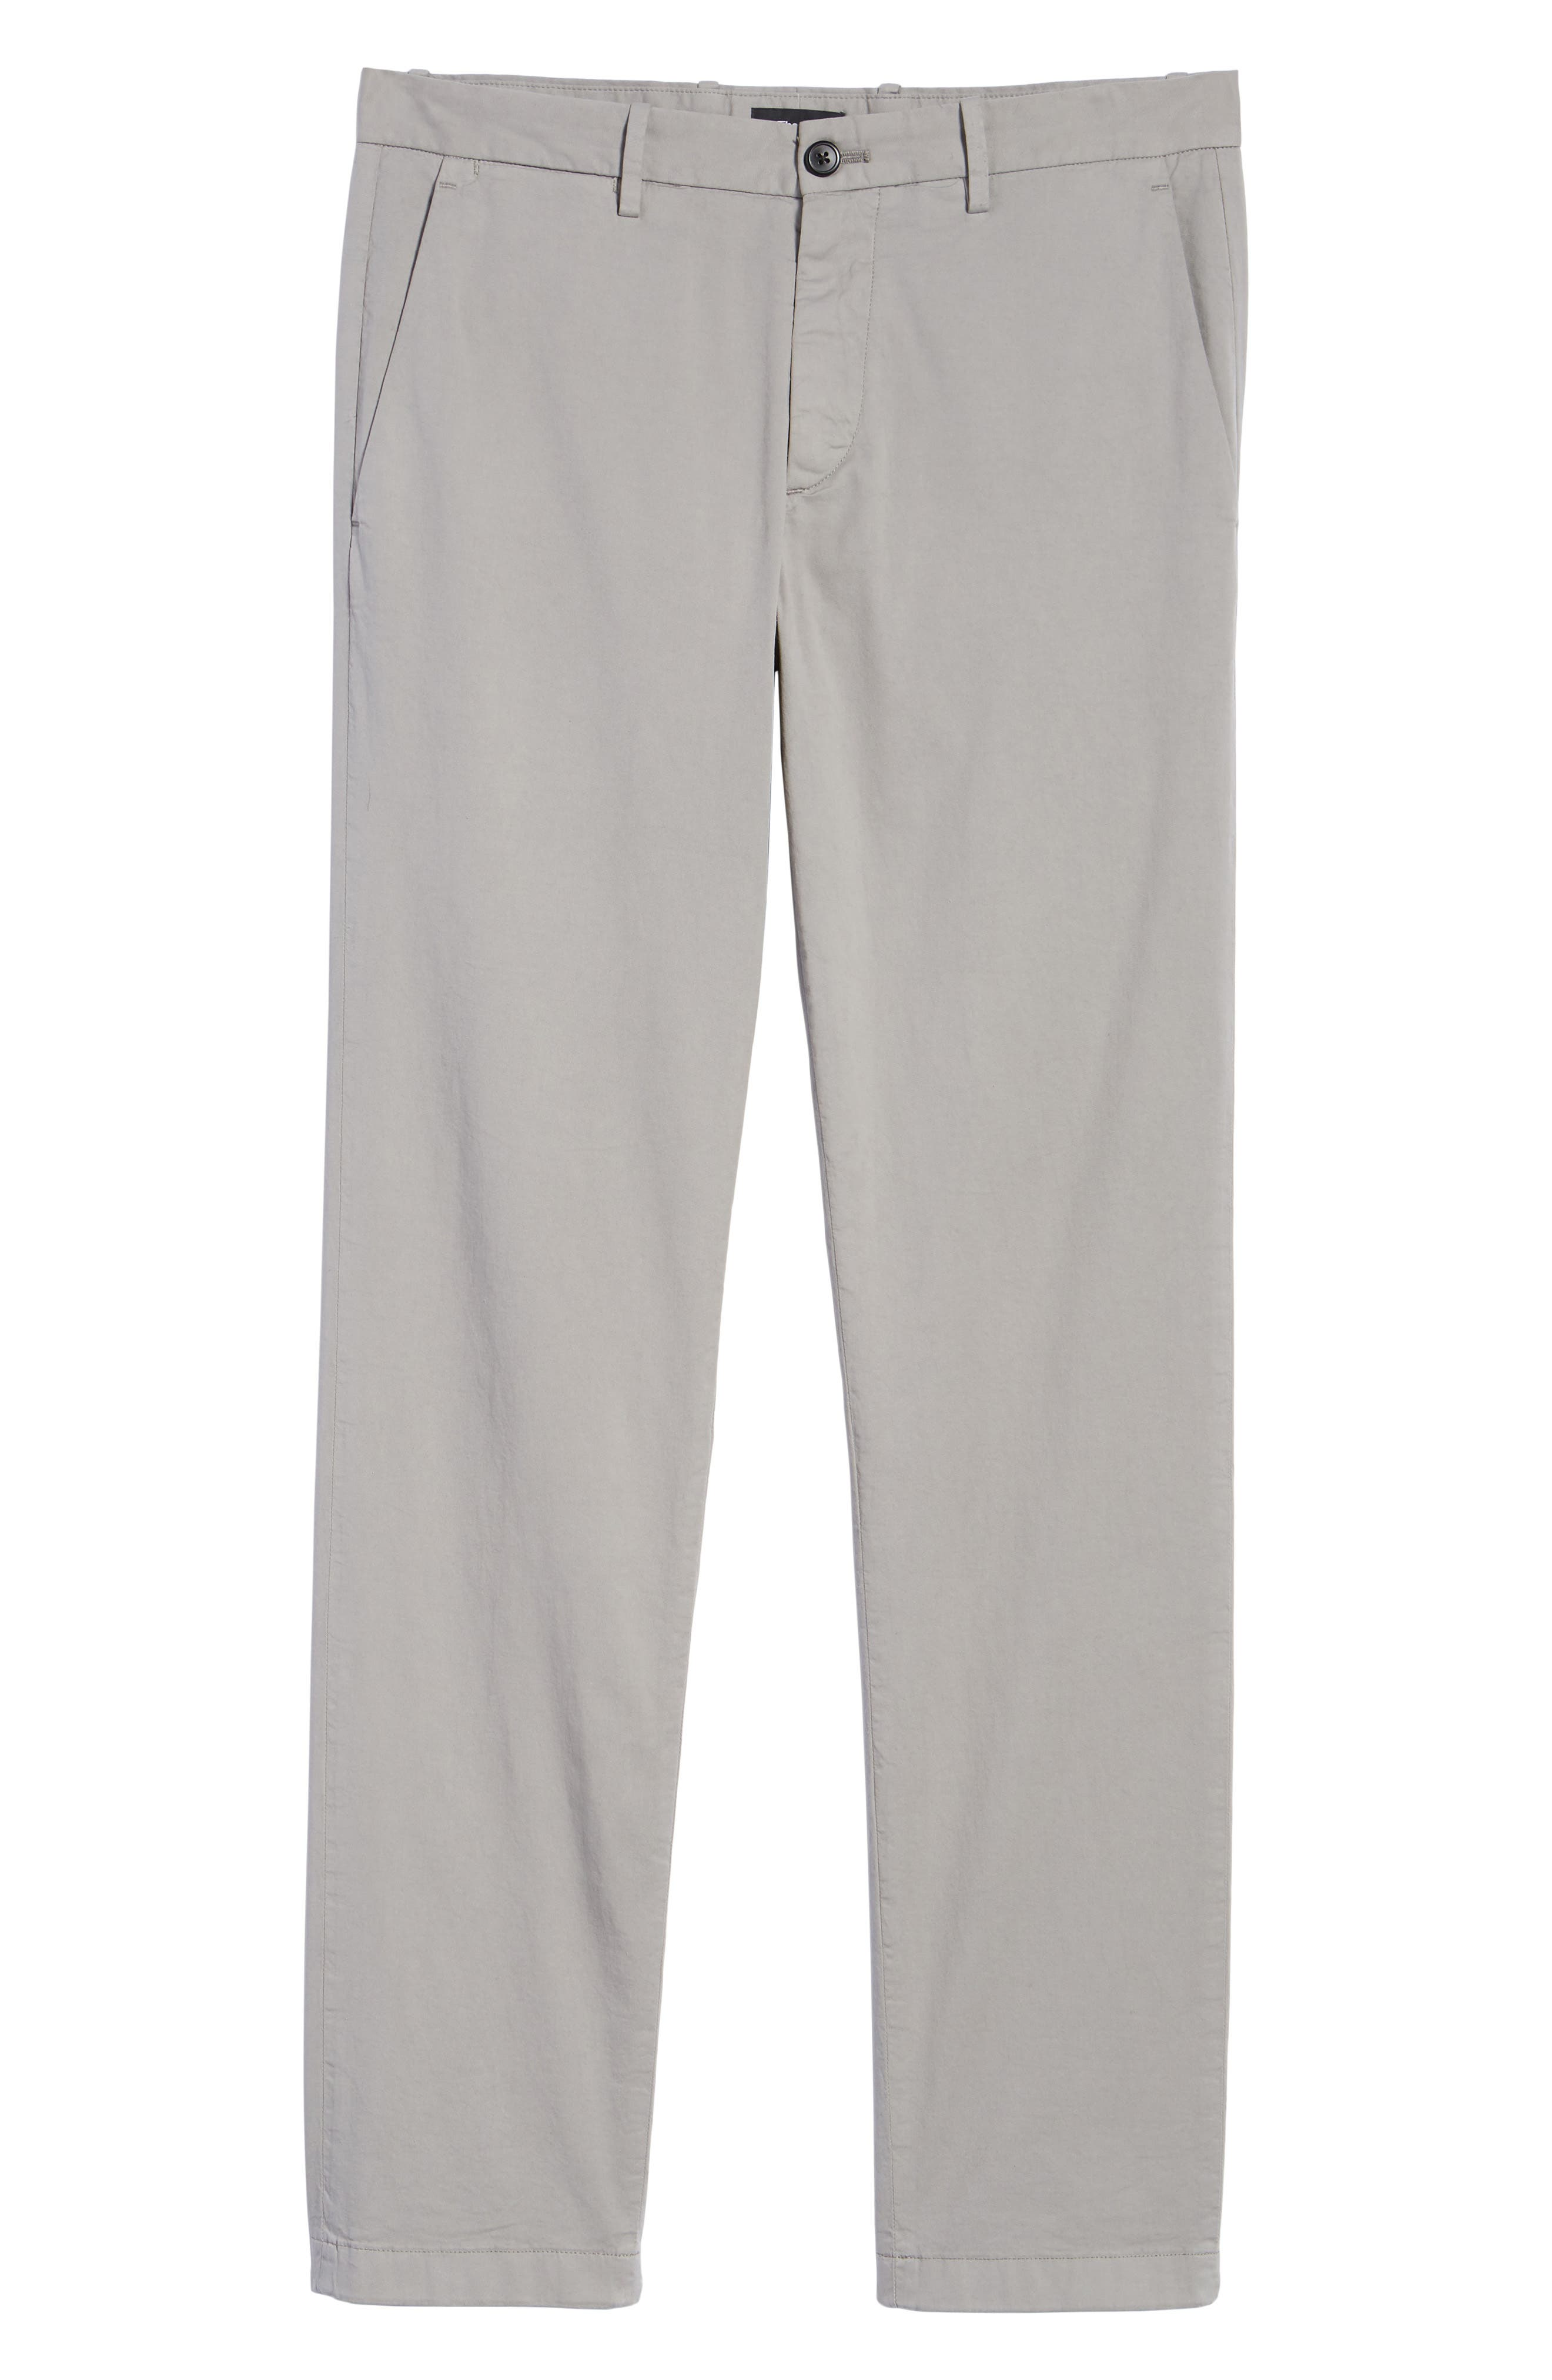 Zaine Patton Flat Front Stretch Solid Cotton Pants,                             Alternate thumbnail 6, color,                             DIM